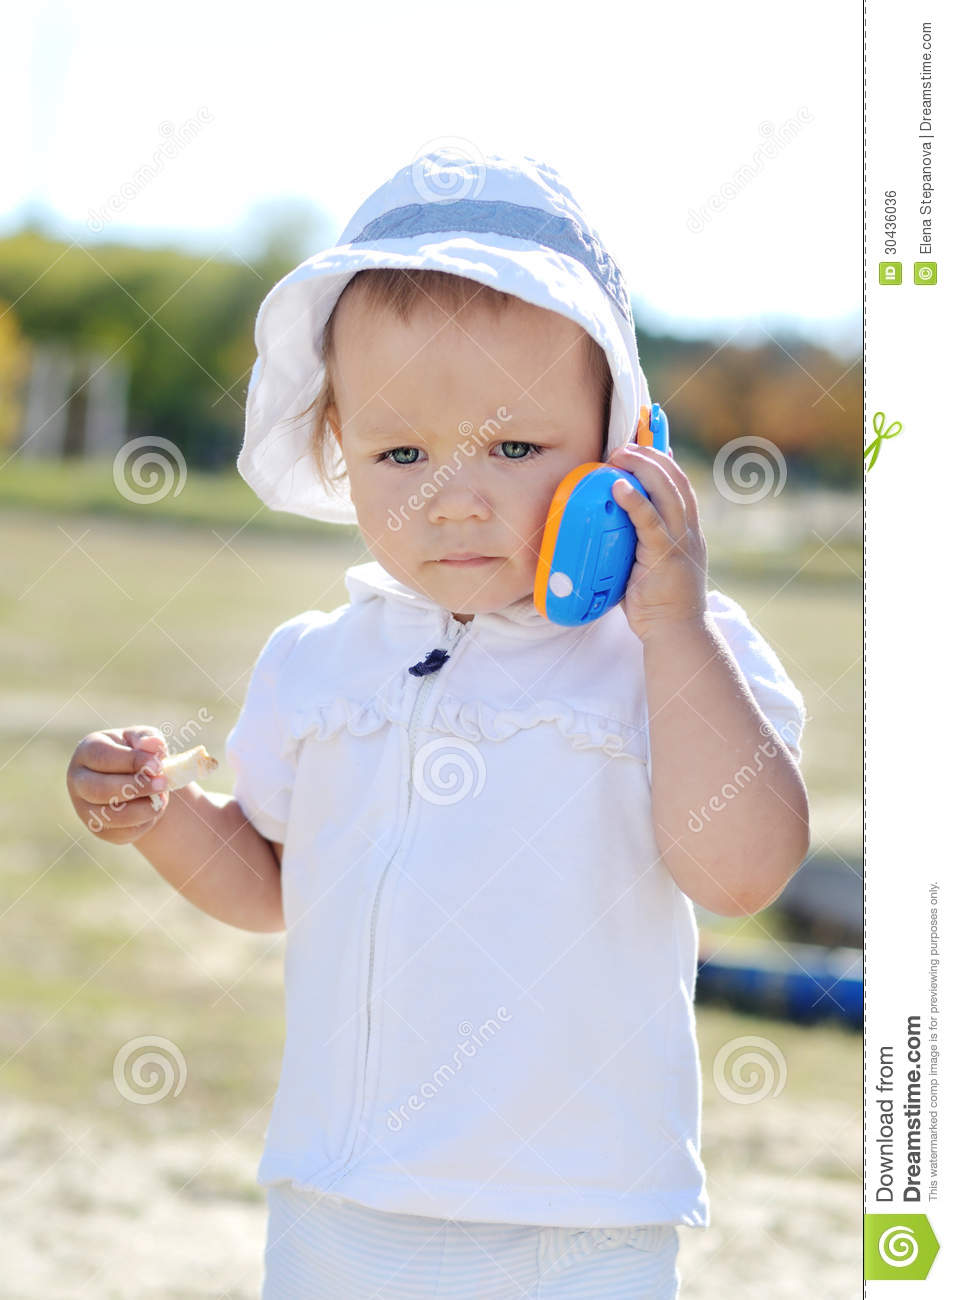 Busy Baby Girl Royalty Free Stock Image - Image: 30436036